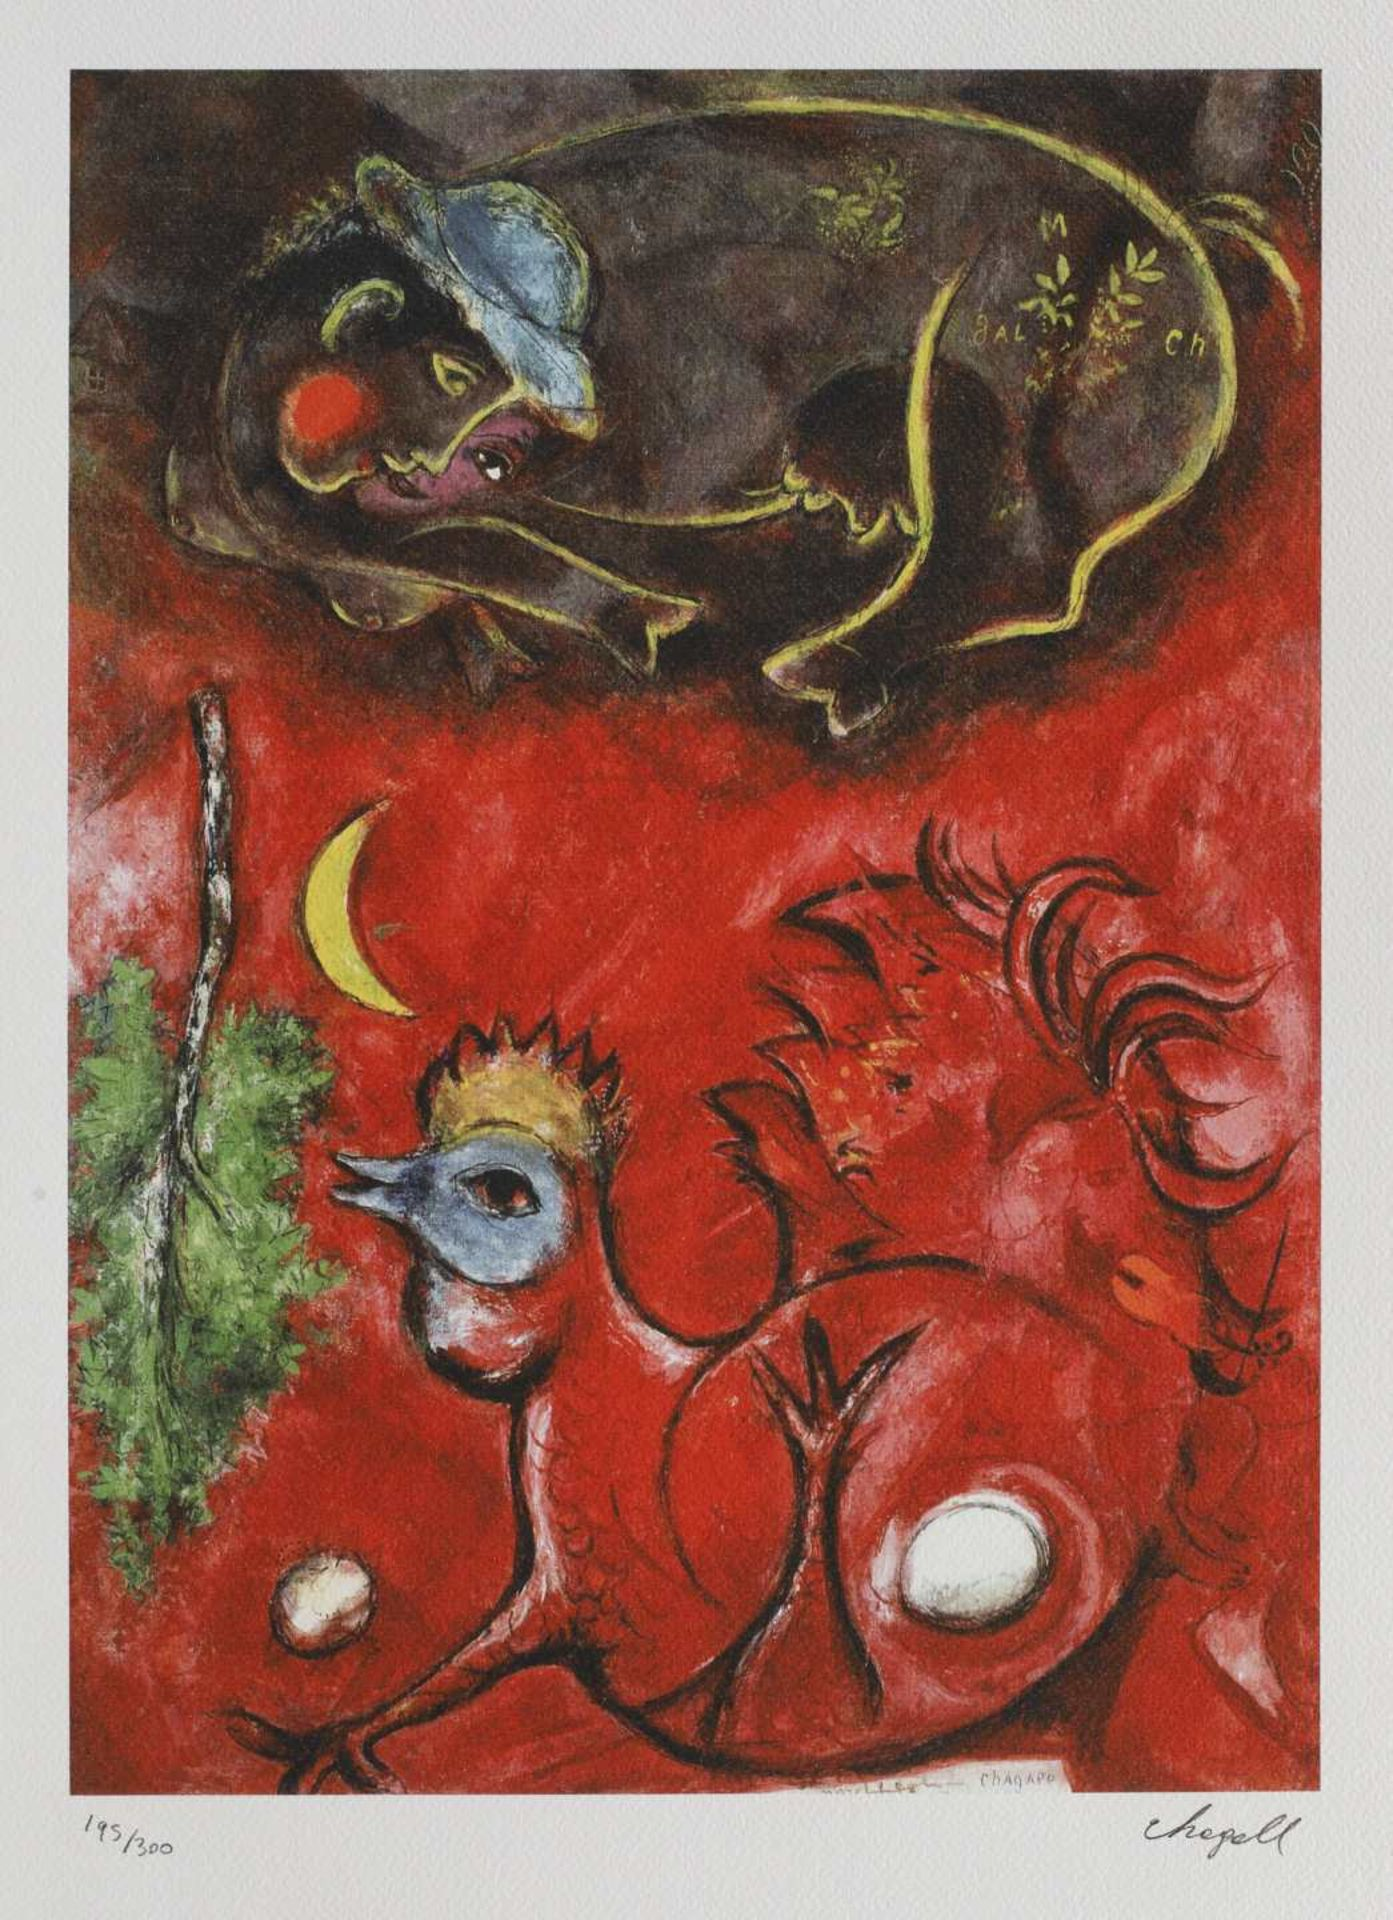 Marc Chagall, Listening to the Cock Marc Chagall, Listening to the Cock, chromolithography, 46 × 33